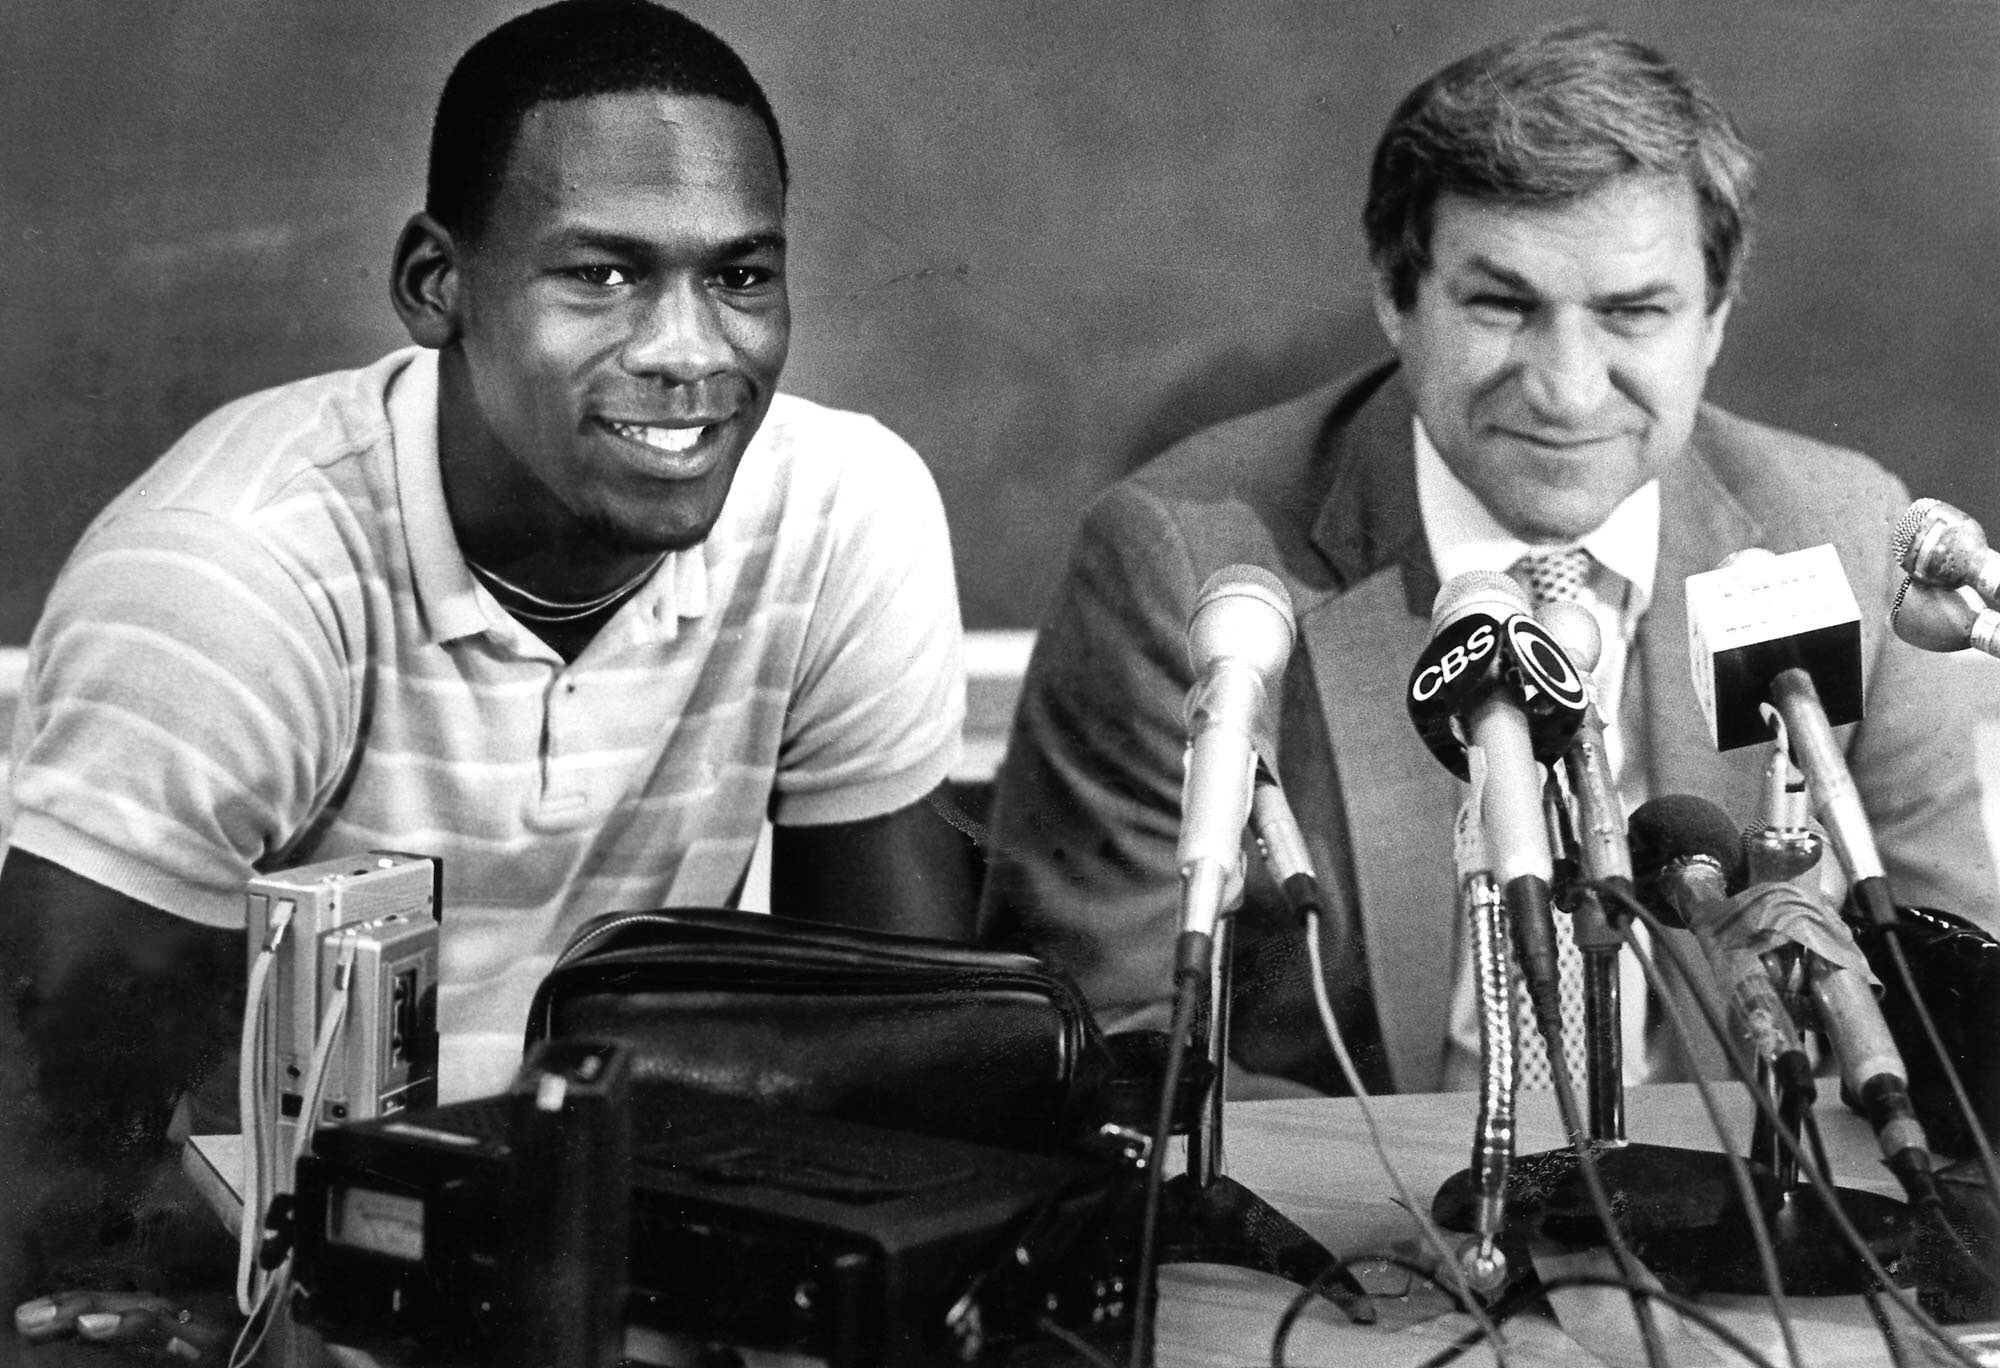 According to a new book, Michael Jordan was considering going to Virginia instead of playing for North Carolina head coach Dean Smith, right.  Jordan won a national title with Smith but gave up his final year of college eligibility to turn pro.